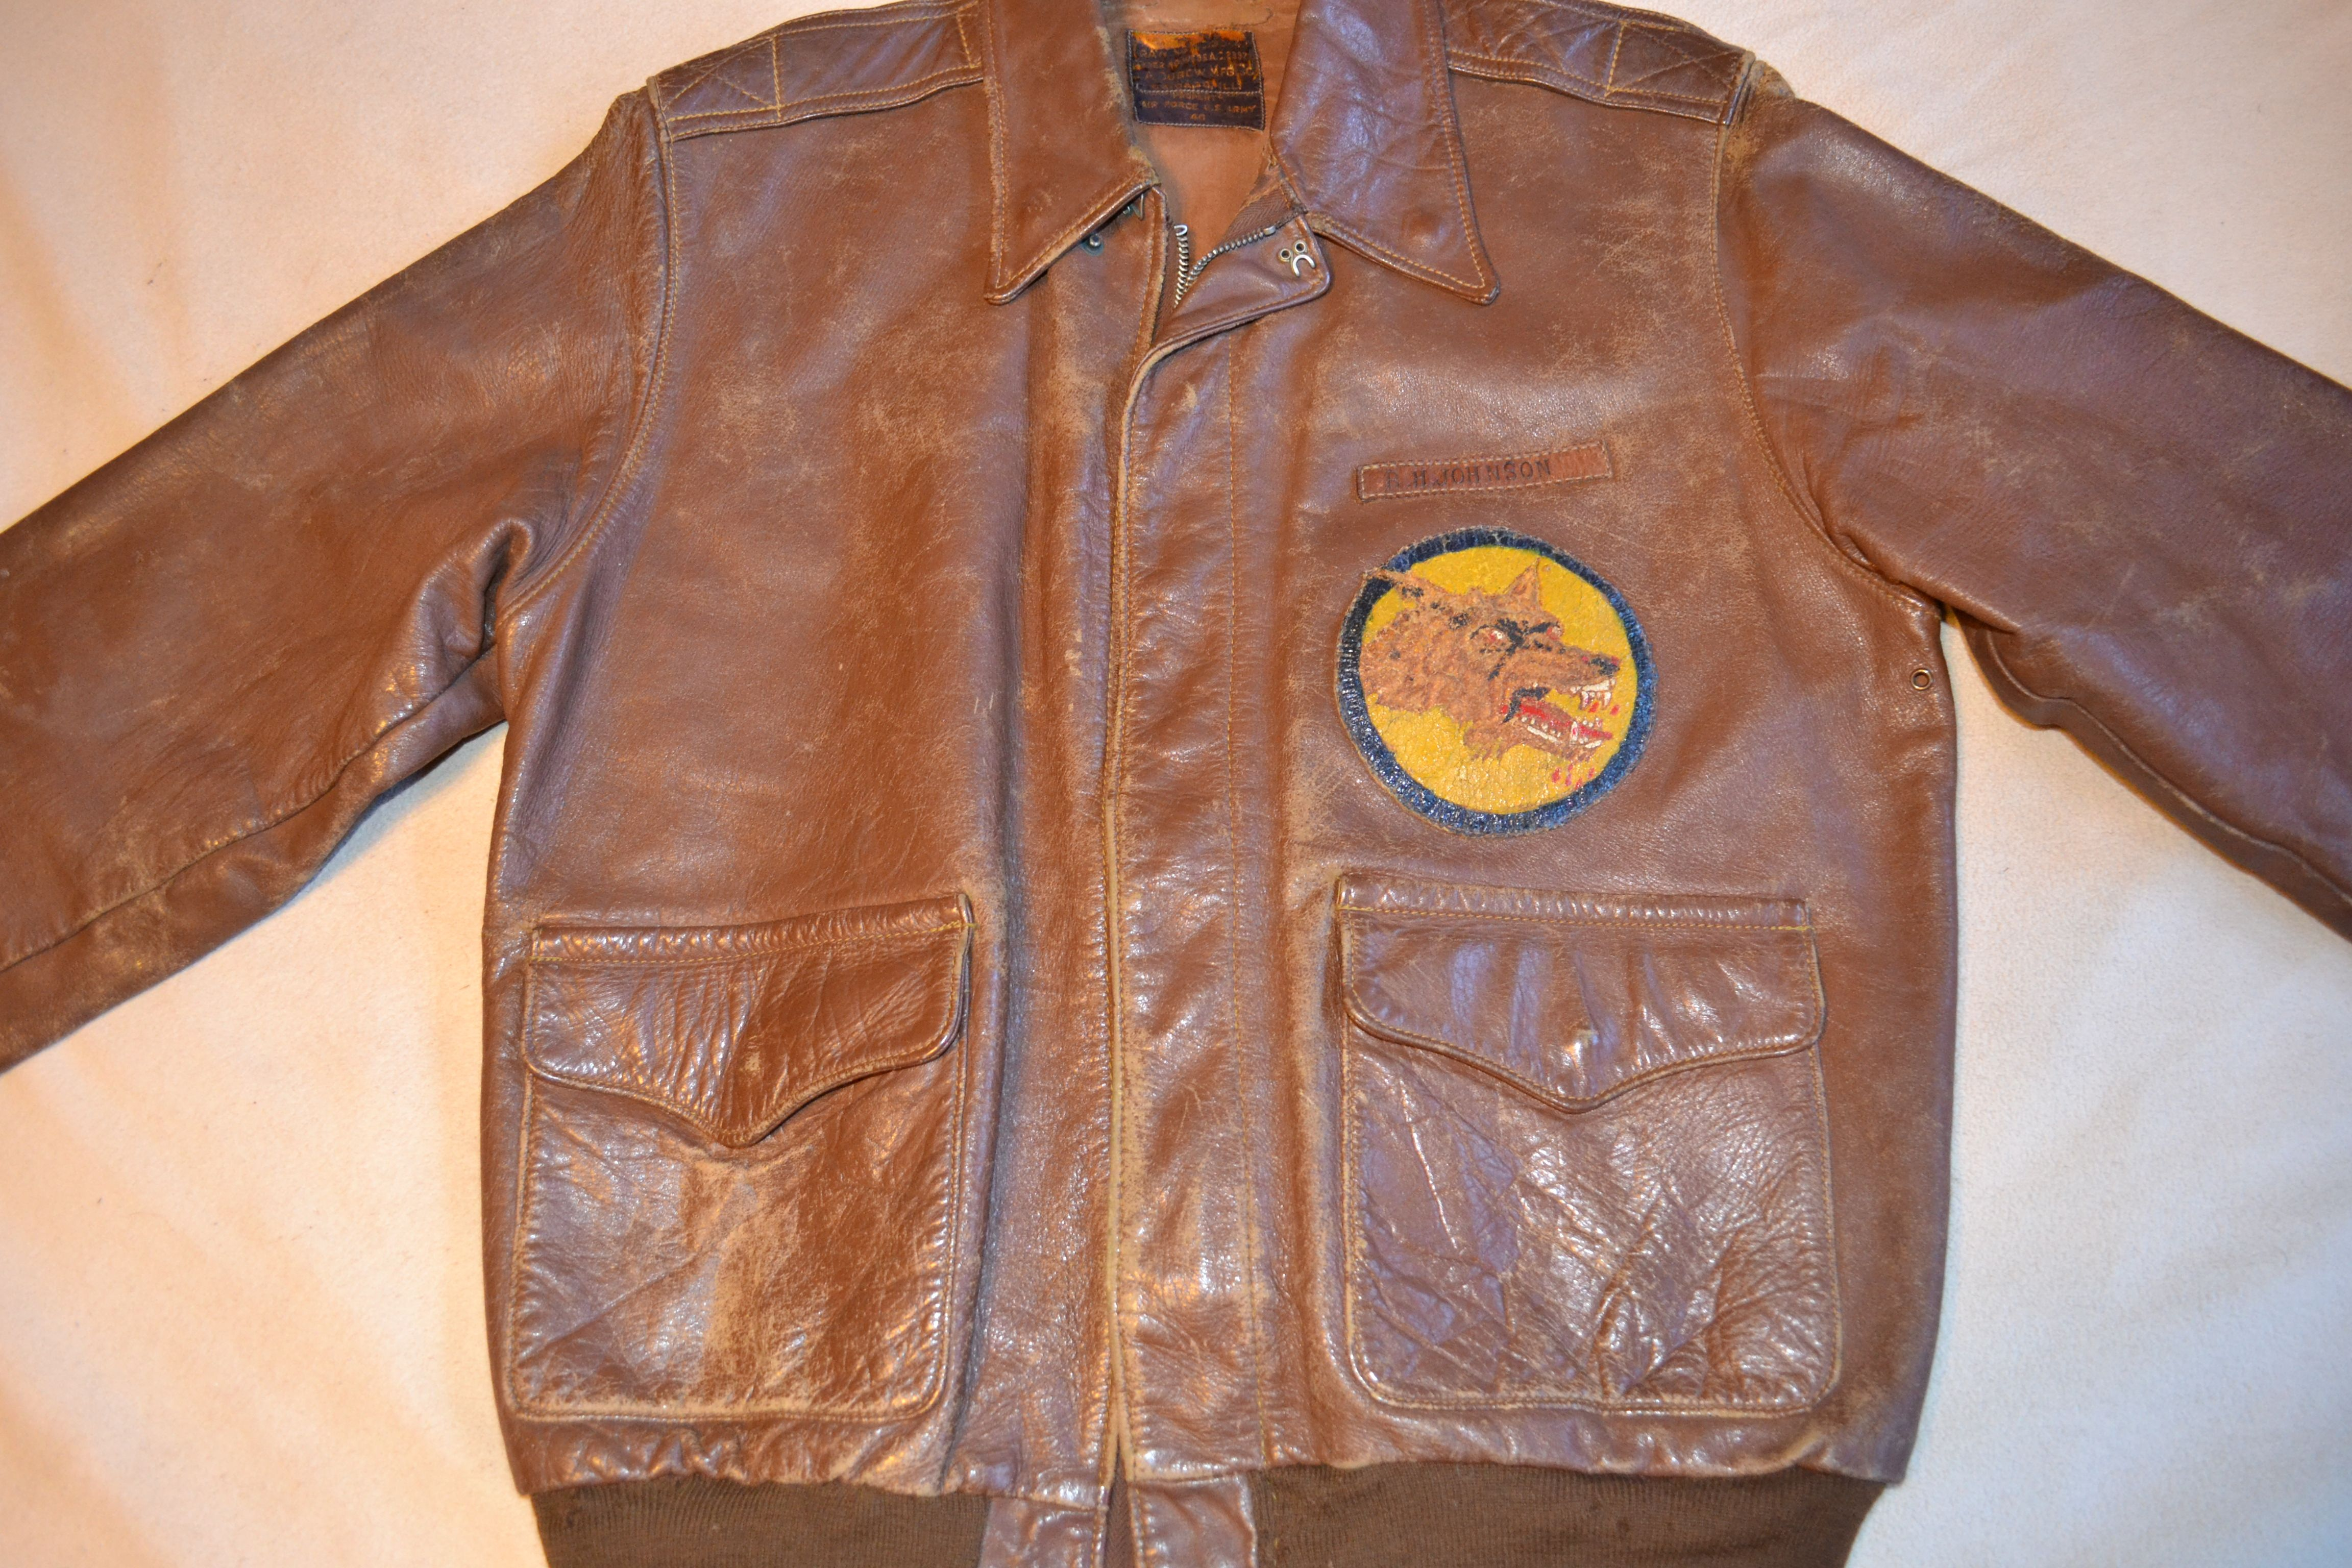 J.A Dubow 23379 (49th Bombardment Squadron) Leather